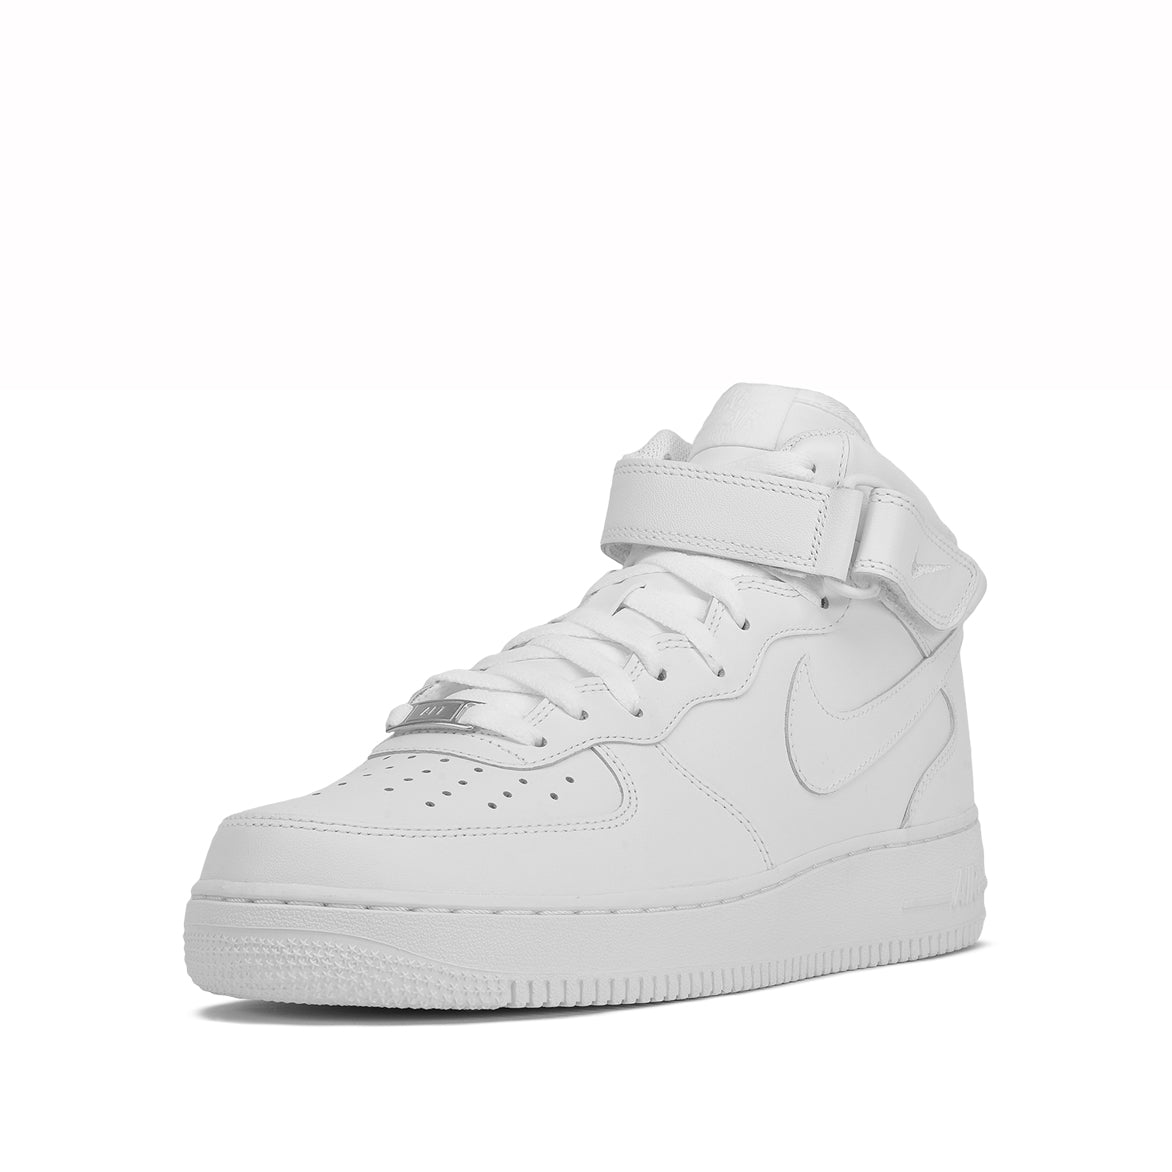 AIR FORCE 1 MID - WHITE / WHITE